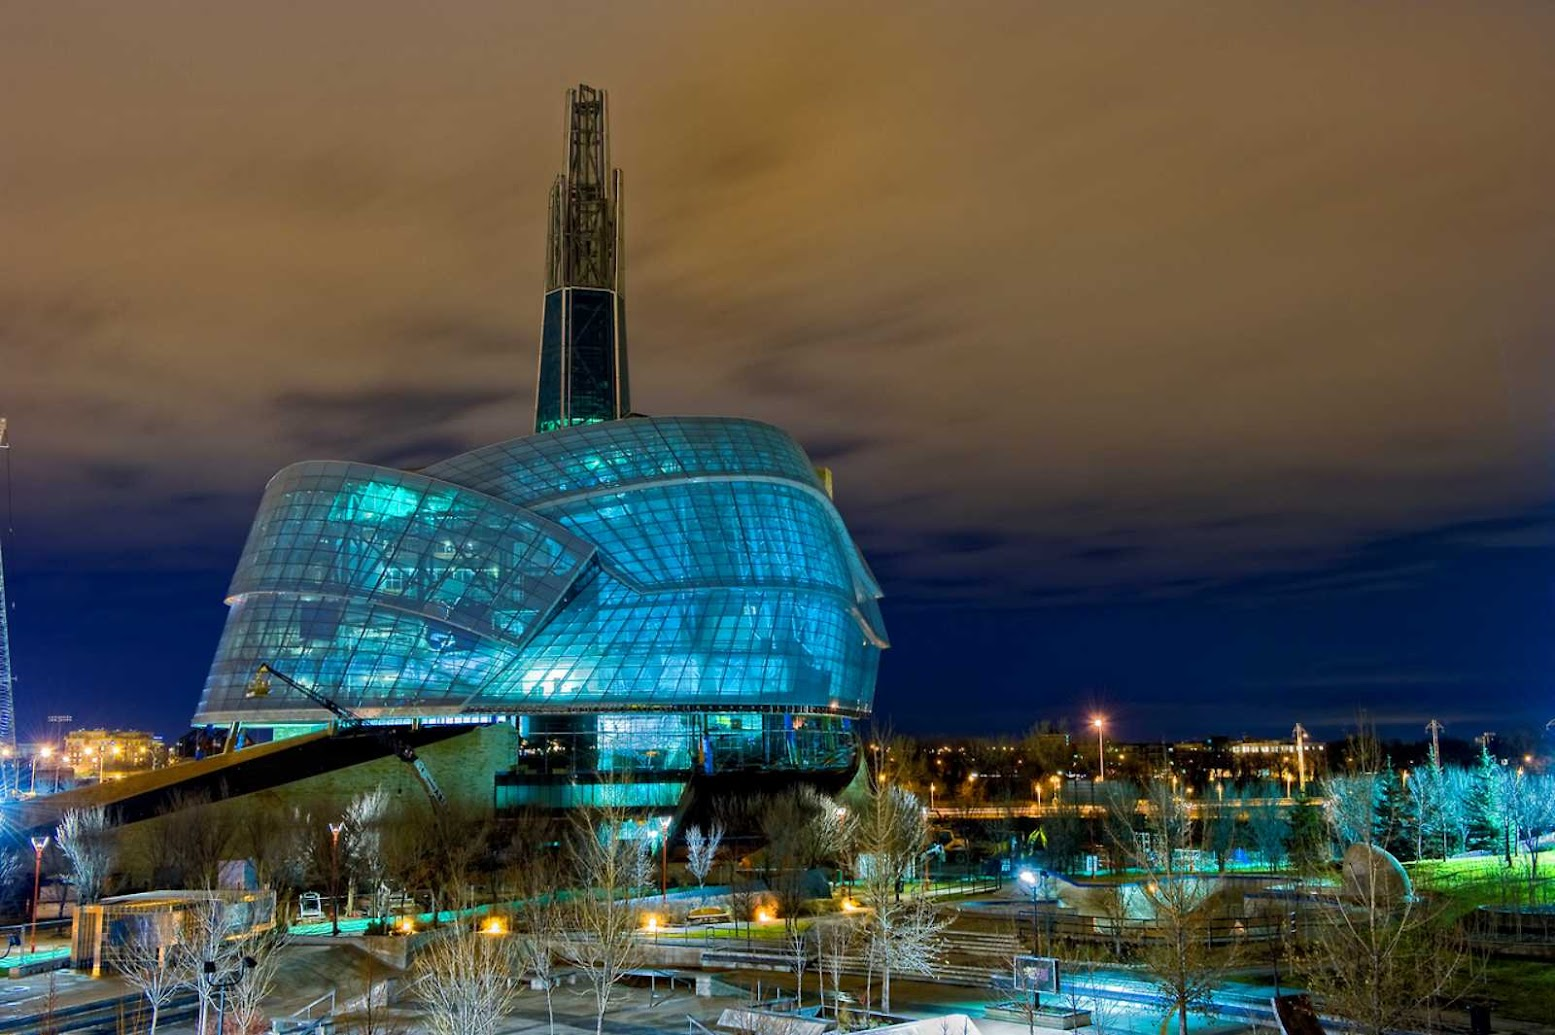 Winnipeg, Manitoba, Canada: [CANADIAN MUSEUM FOR HUMAN RIGHTS BY ANTOINE PREDOCK ARCHITECTS]